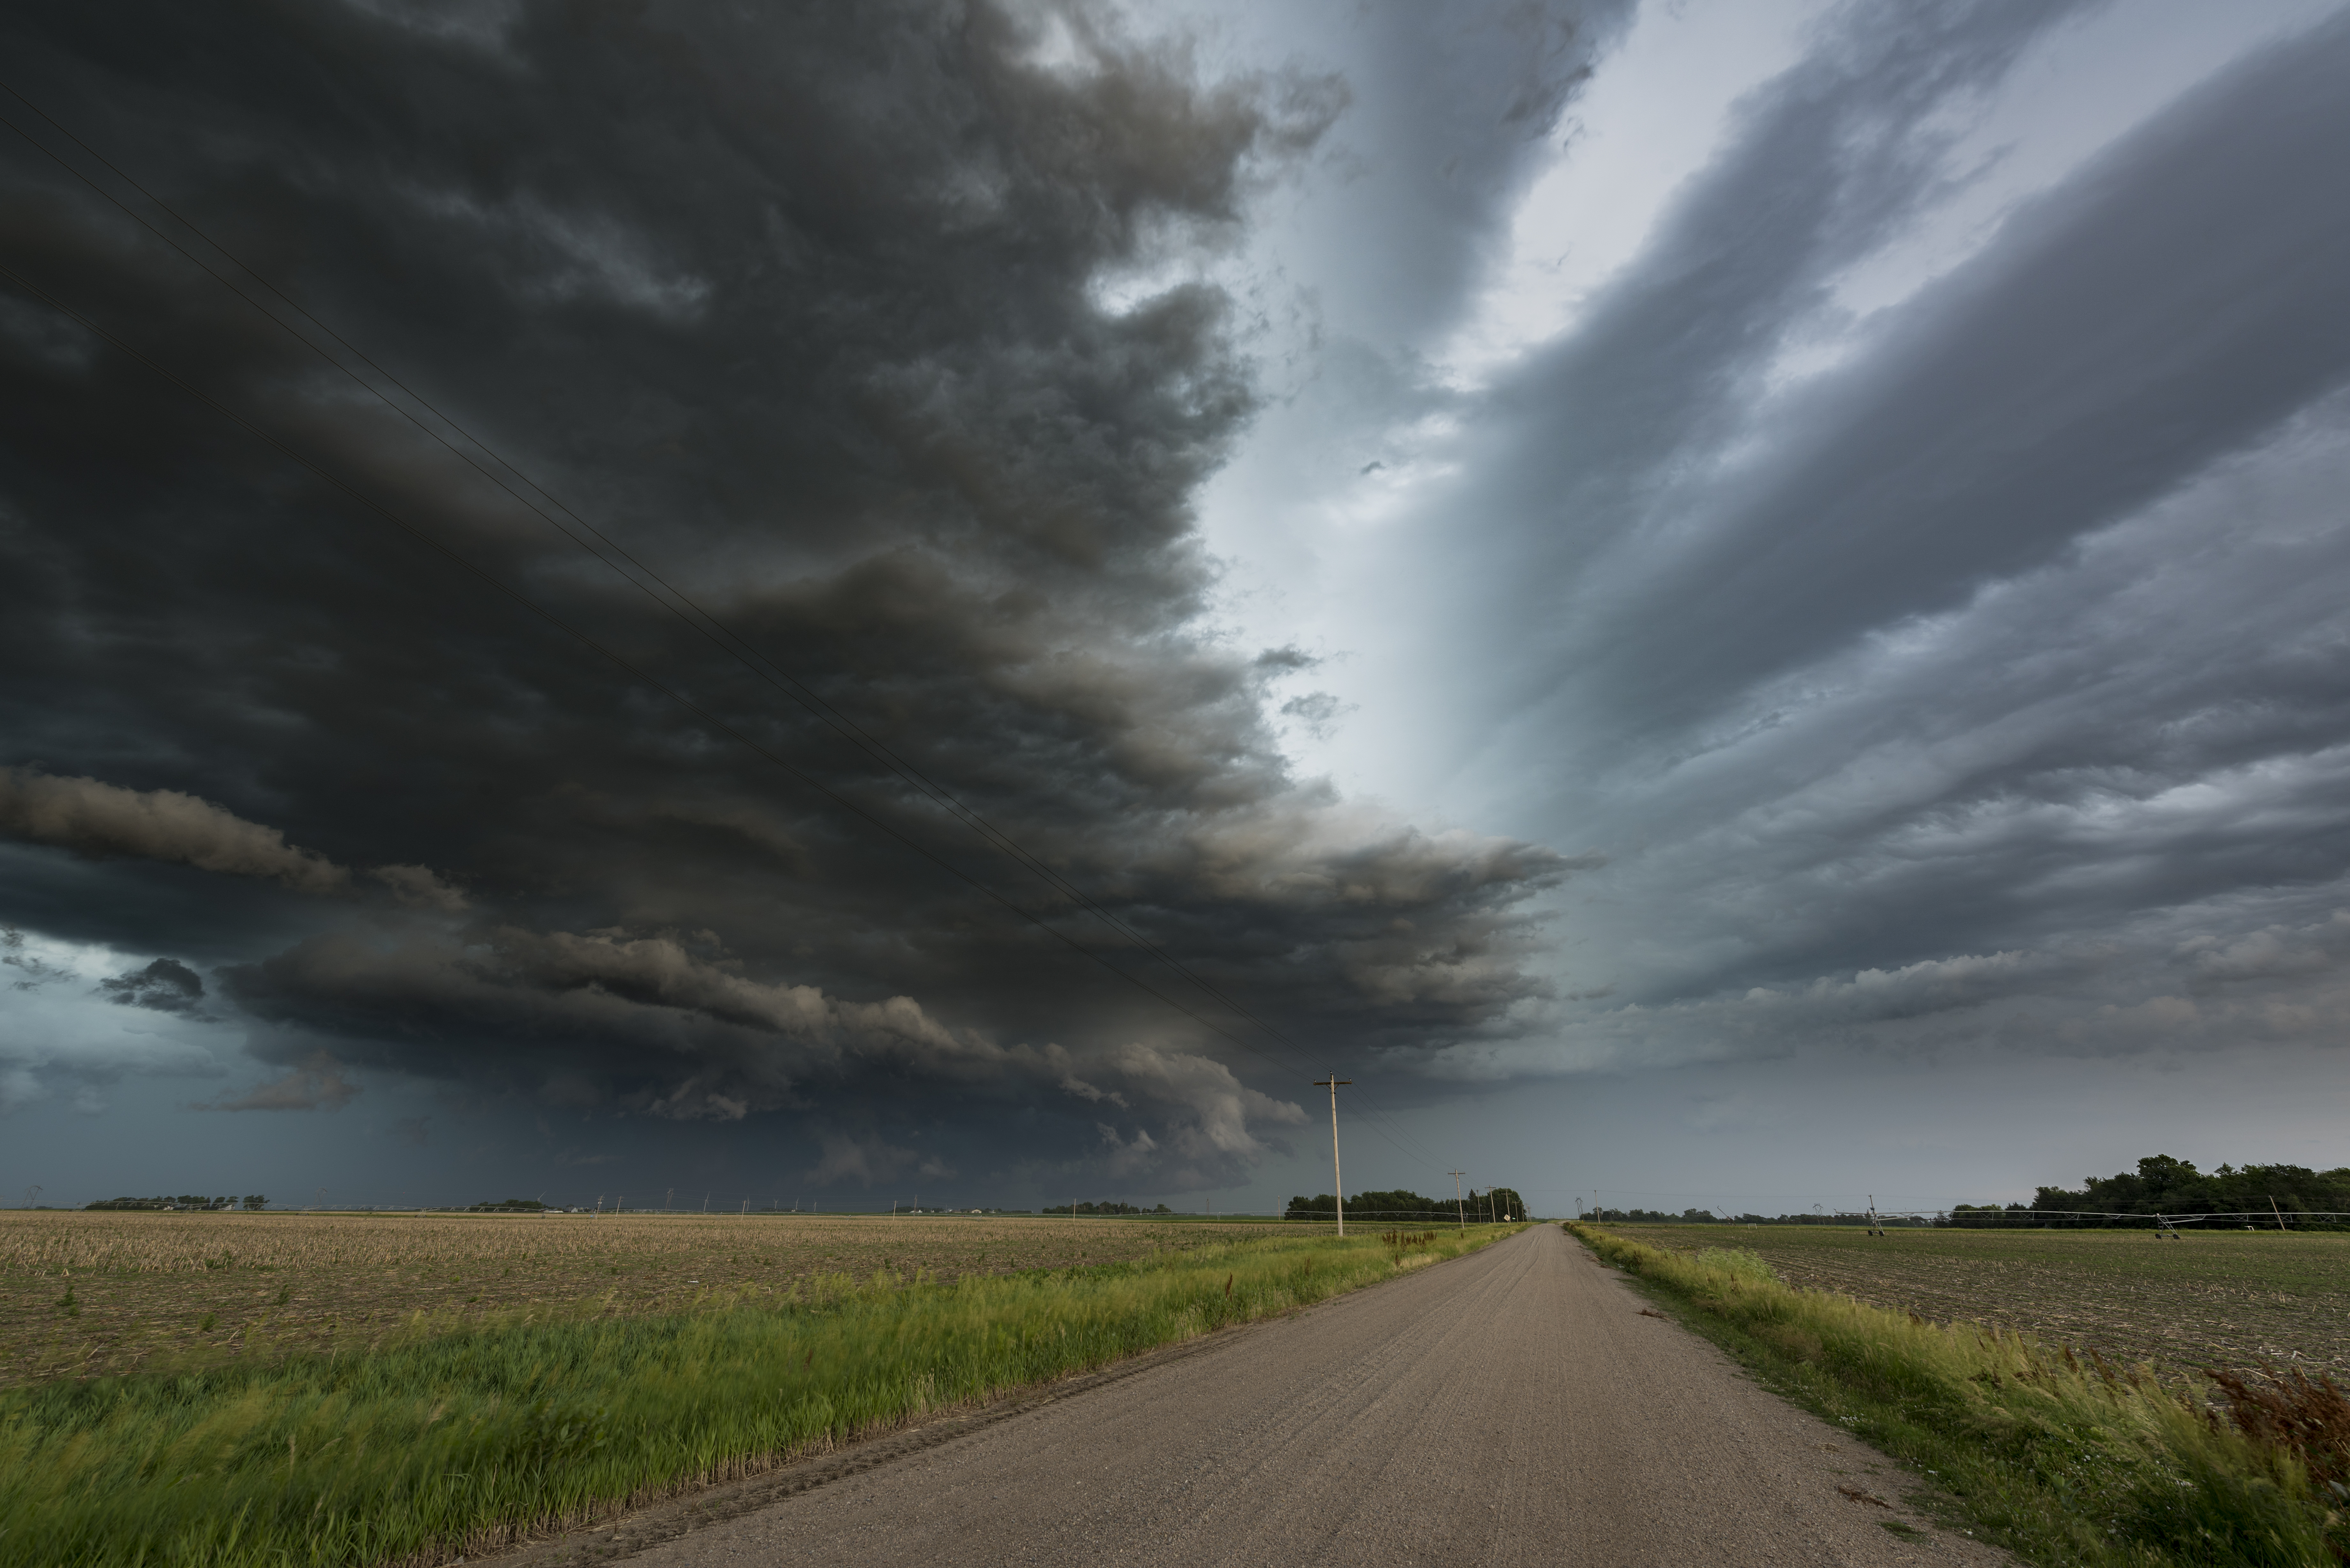 Rotating mesocyclone storm over the Great Plains of Nebraska. USA